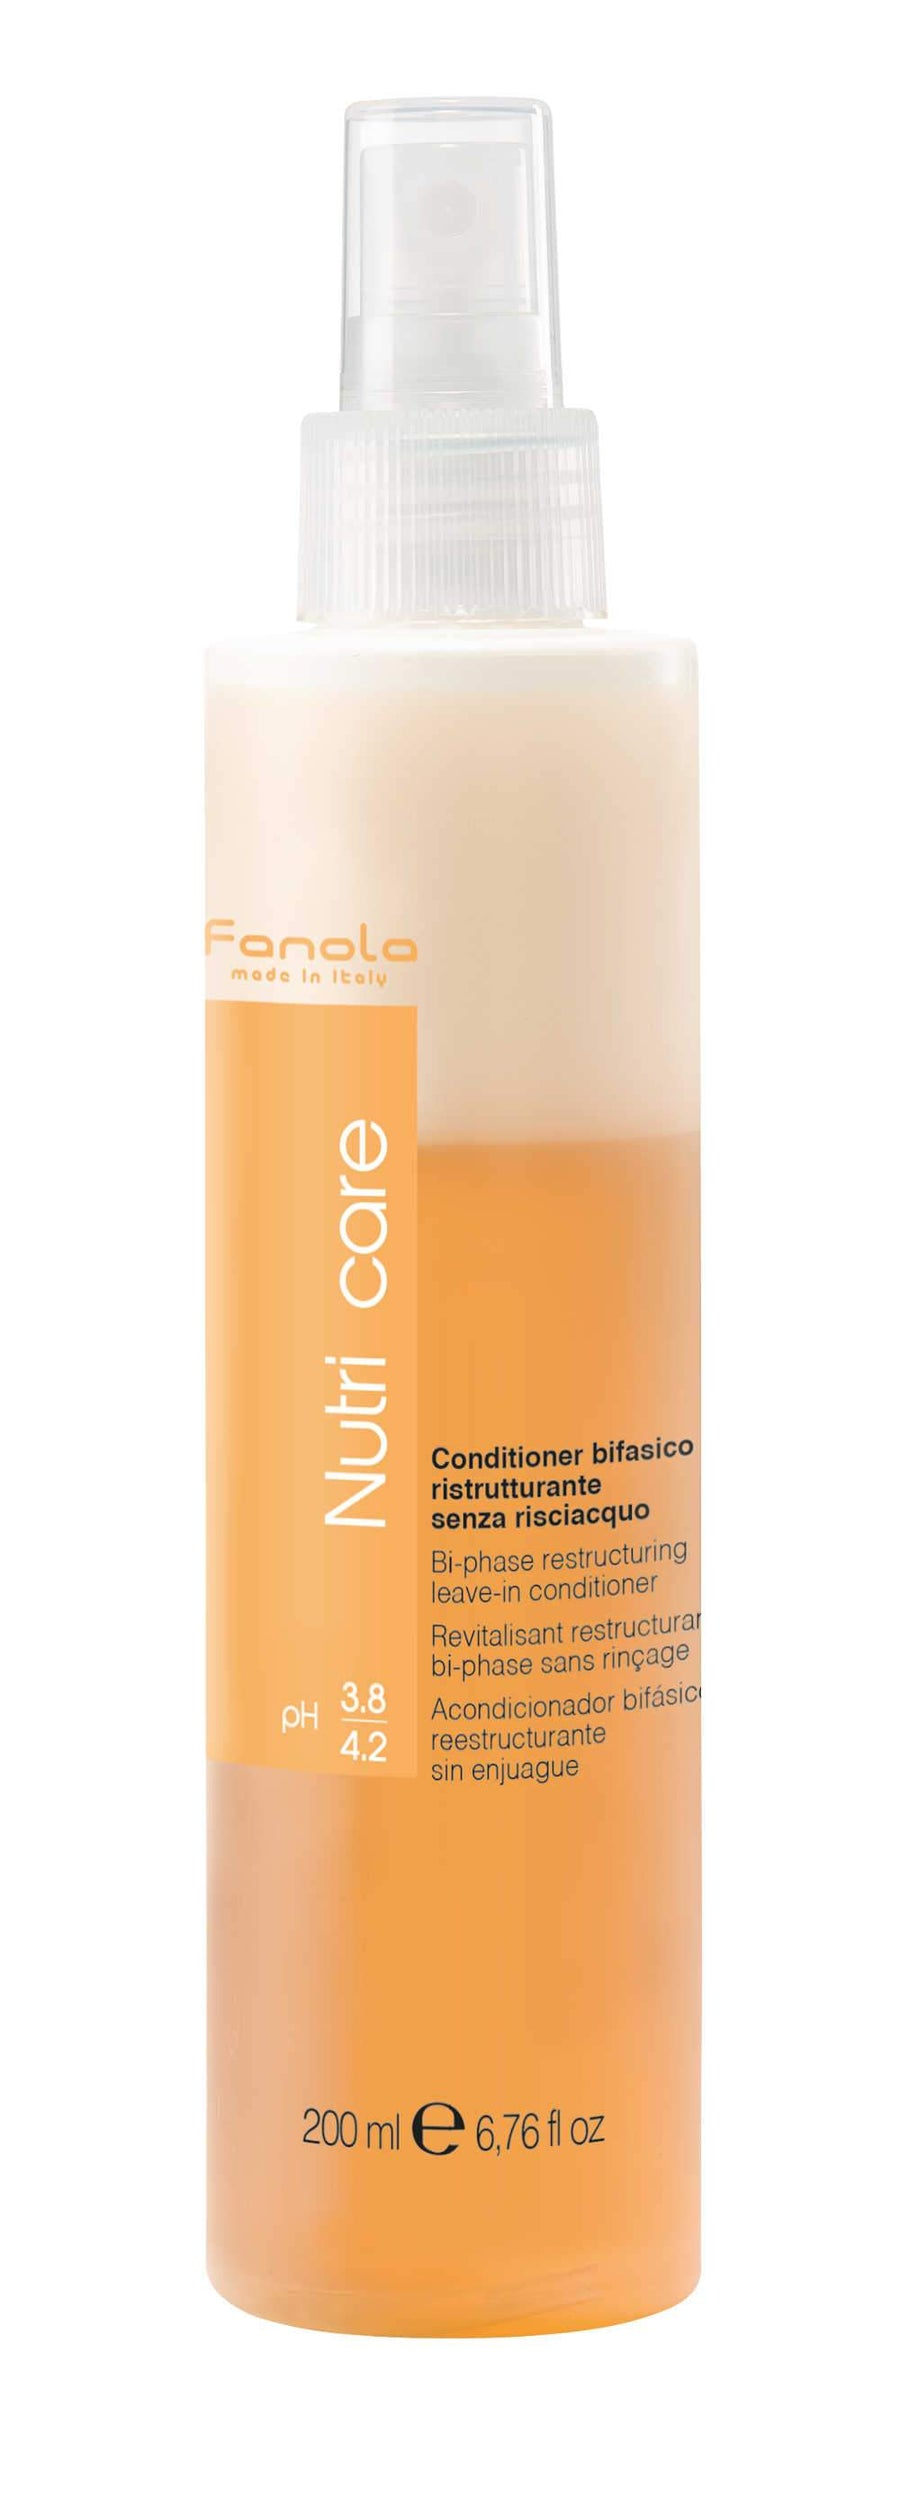 Fanola Nutri Care Bi-Phase Restructuring Leave-In Conditioner, 200ml Hair Treatments Fanola